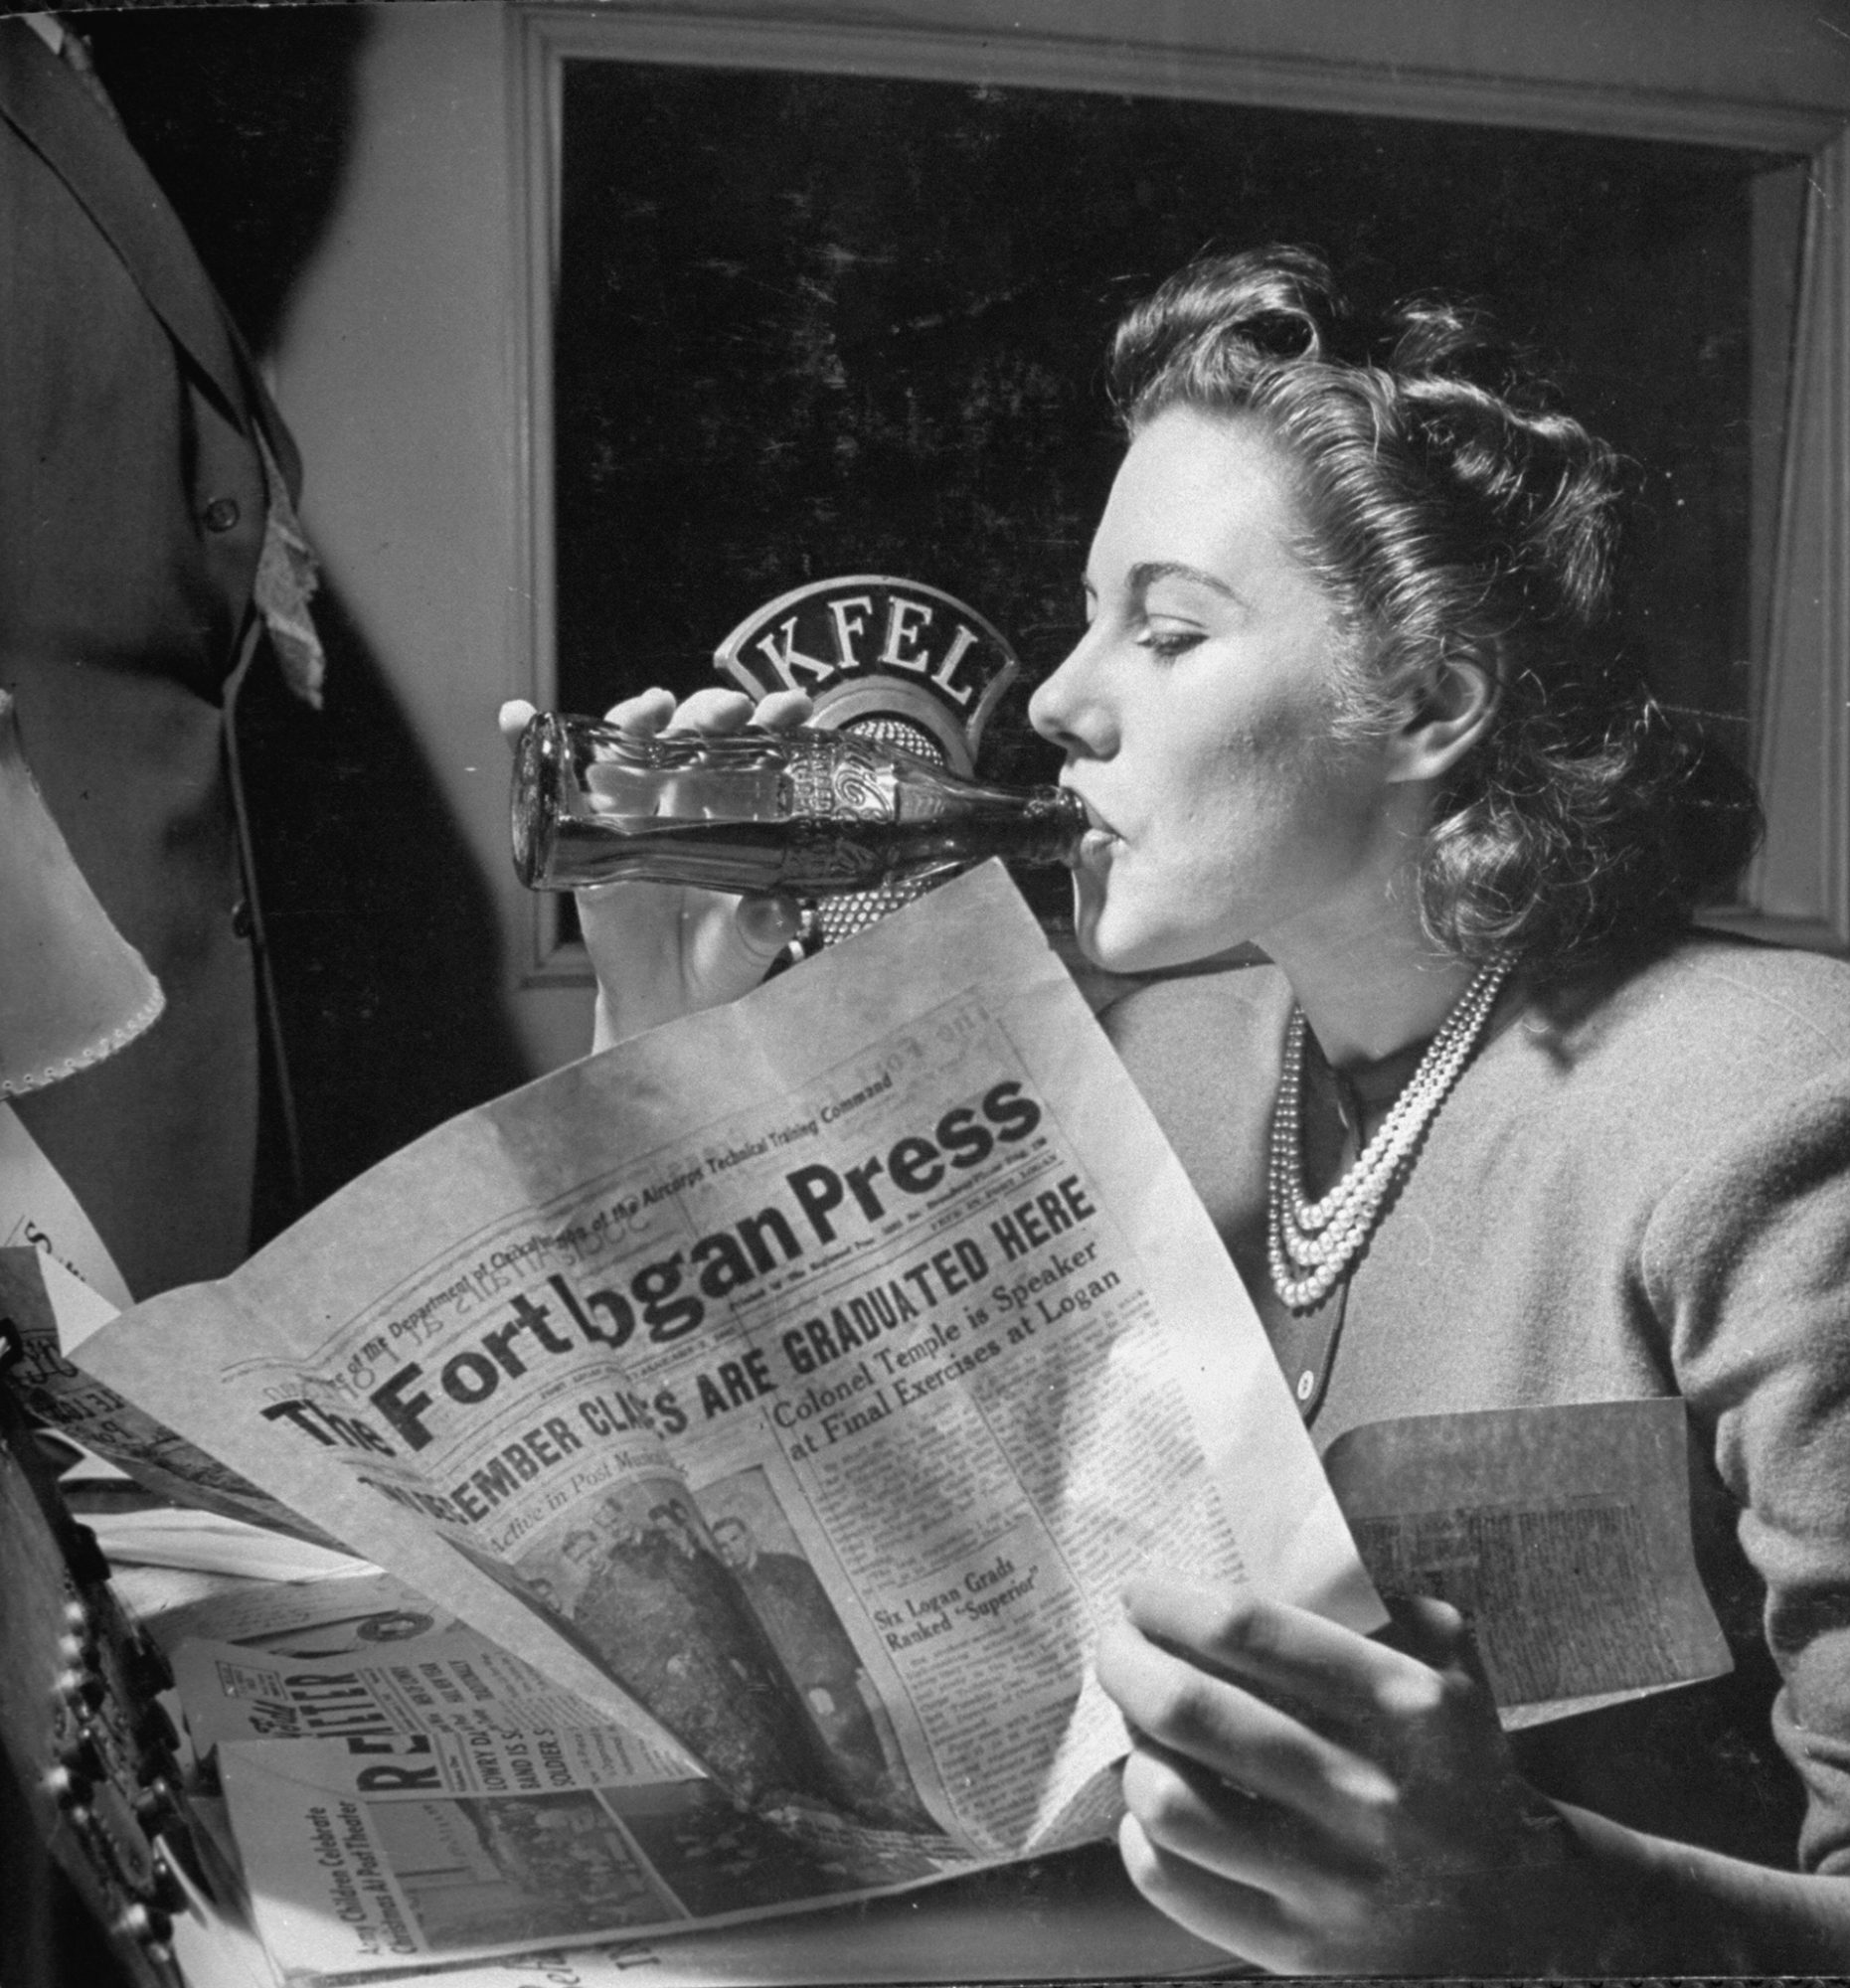 Woman Drinking from Glass Coke Bottle